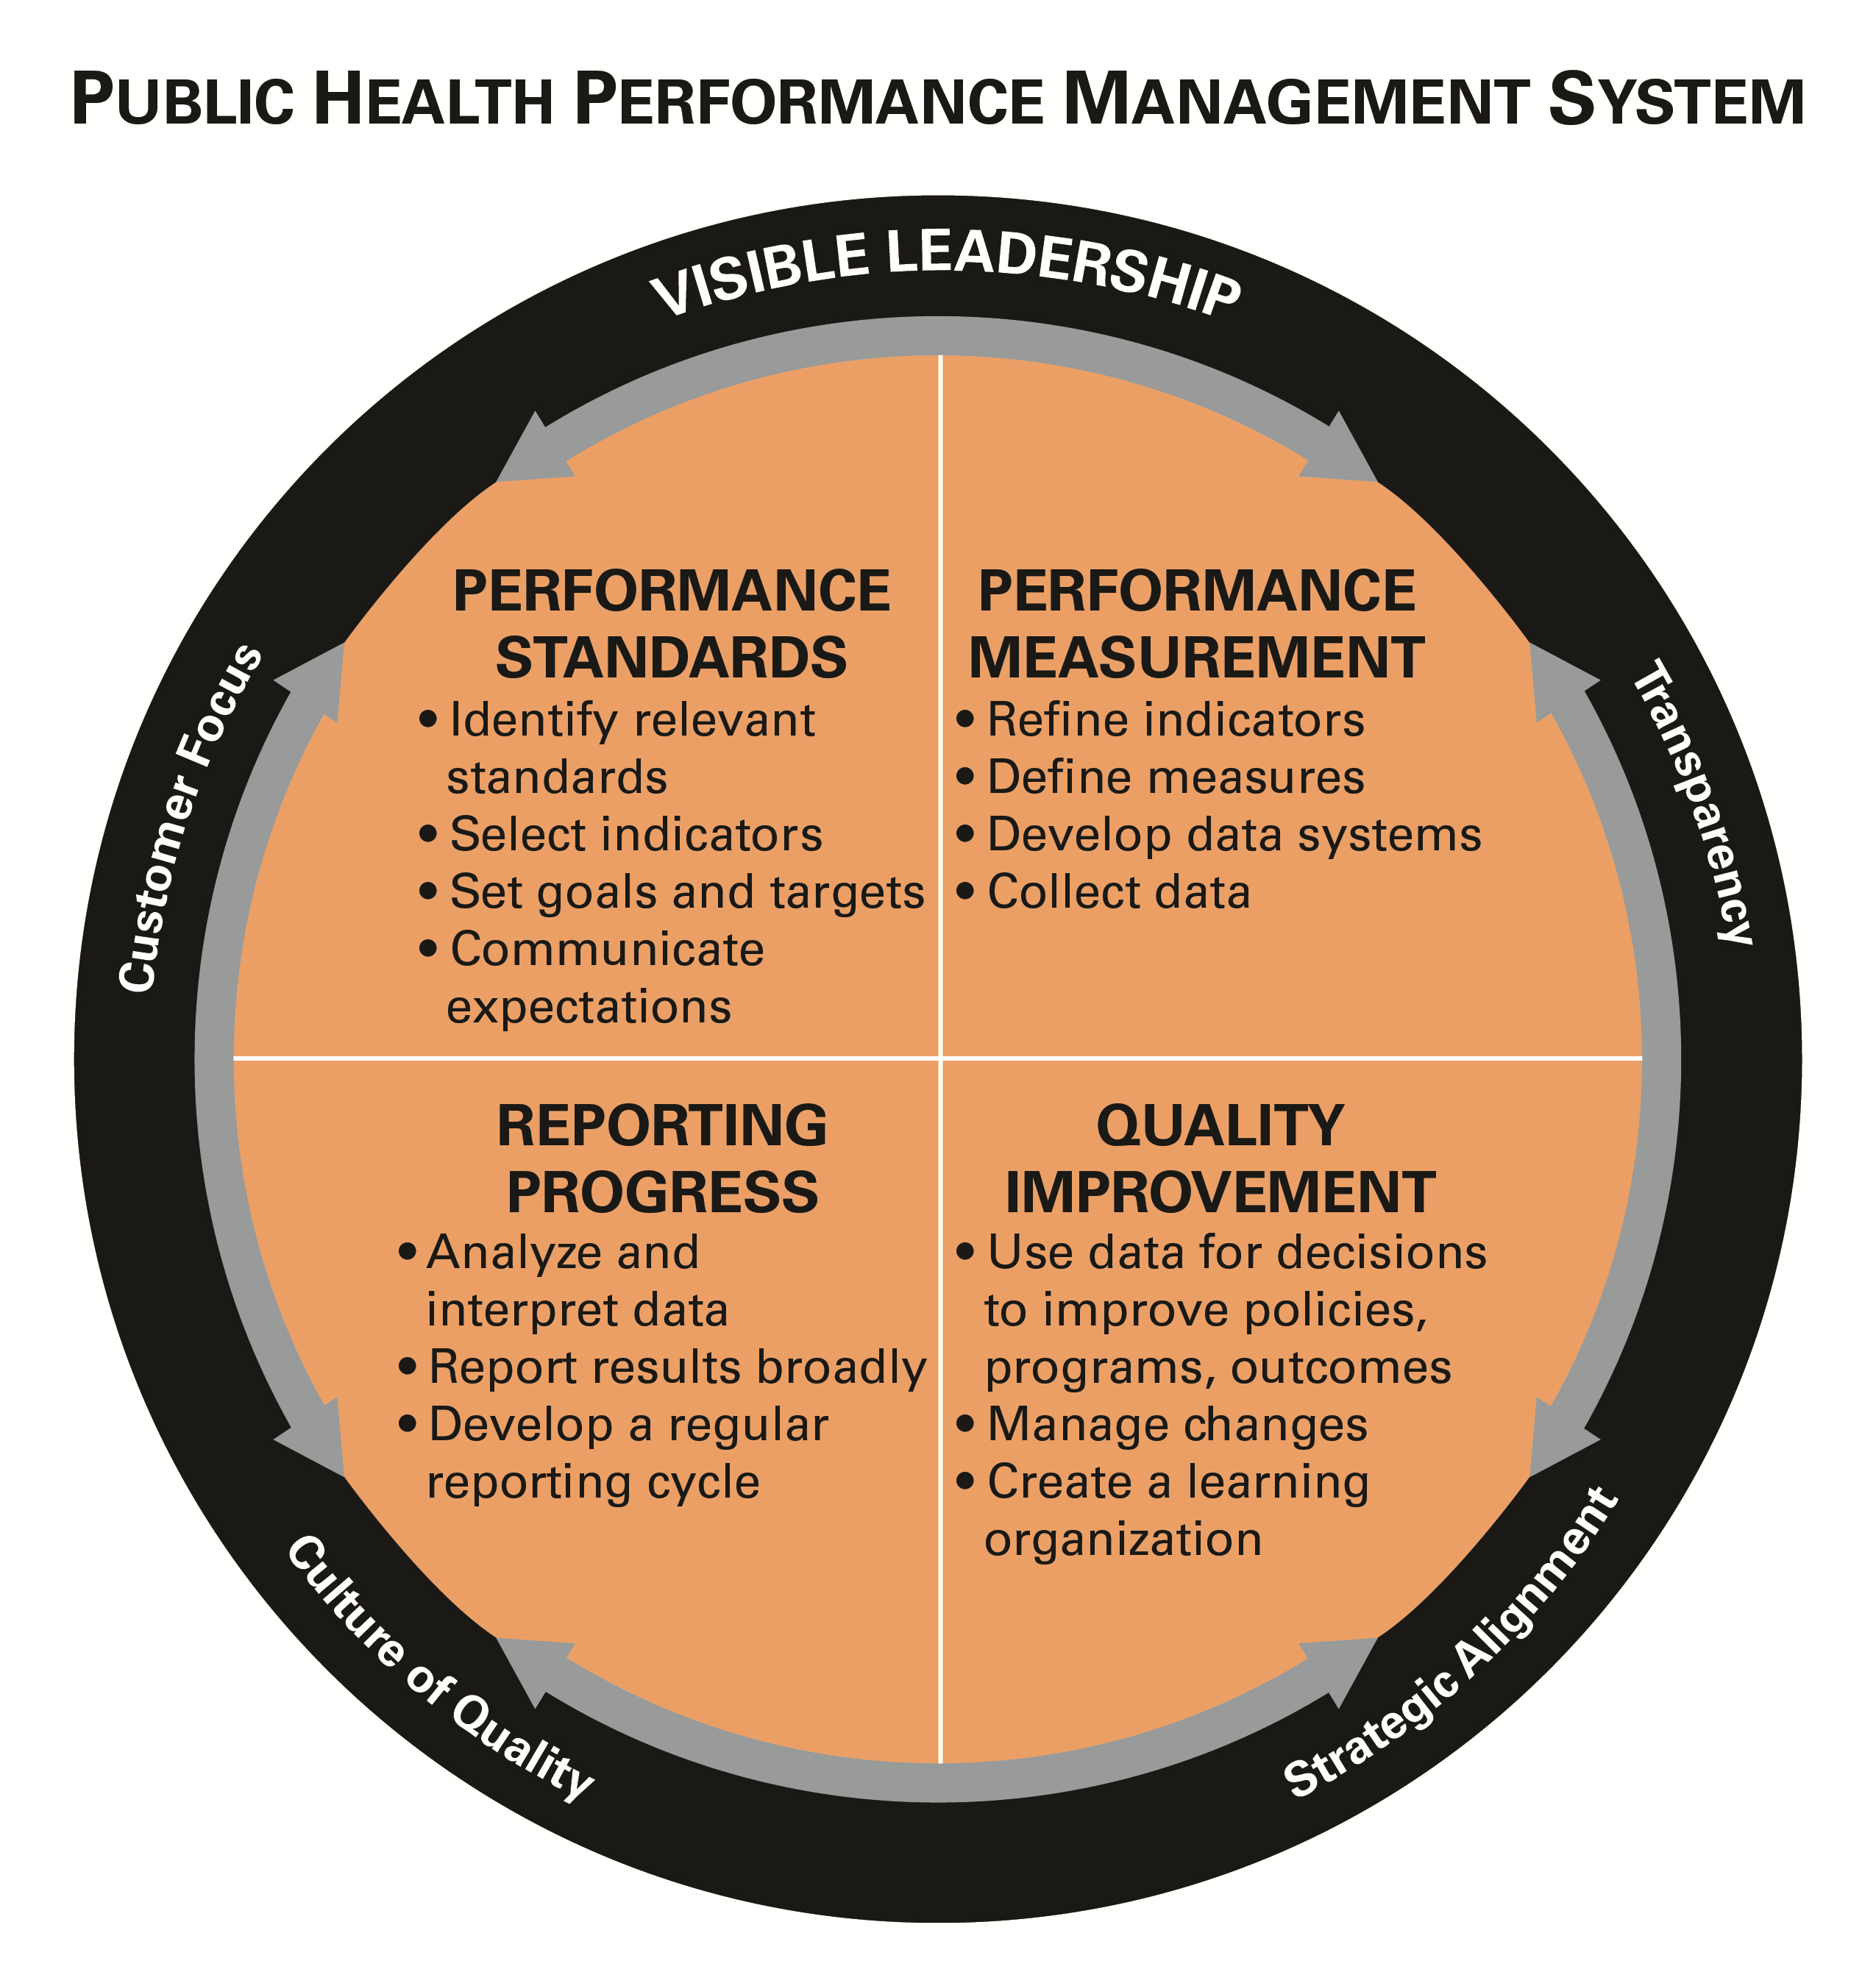 performance management system pdf